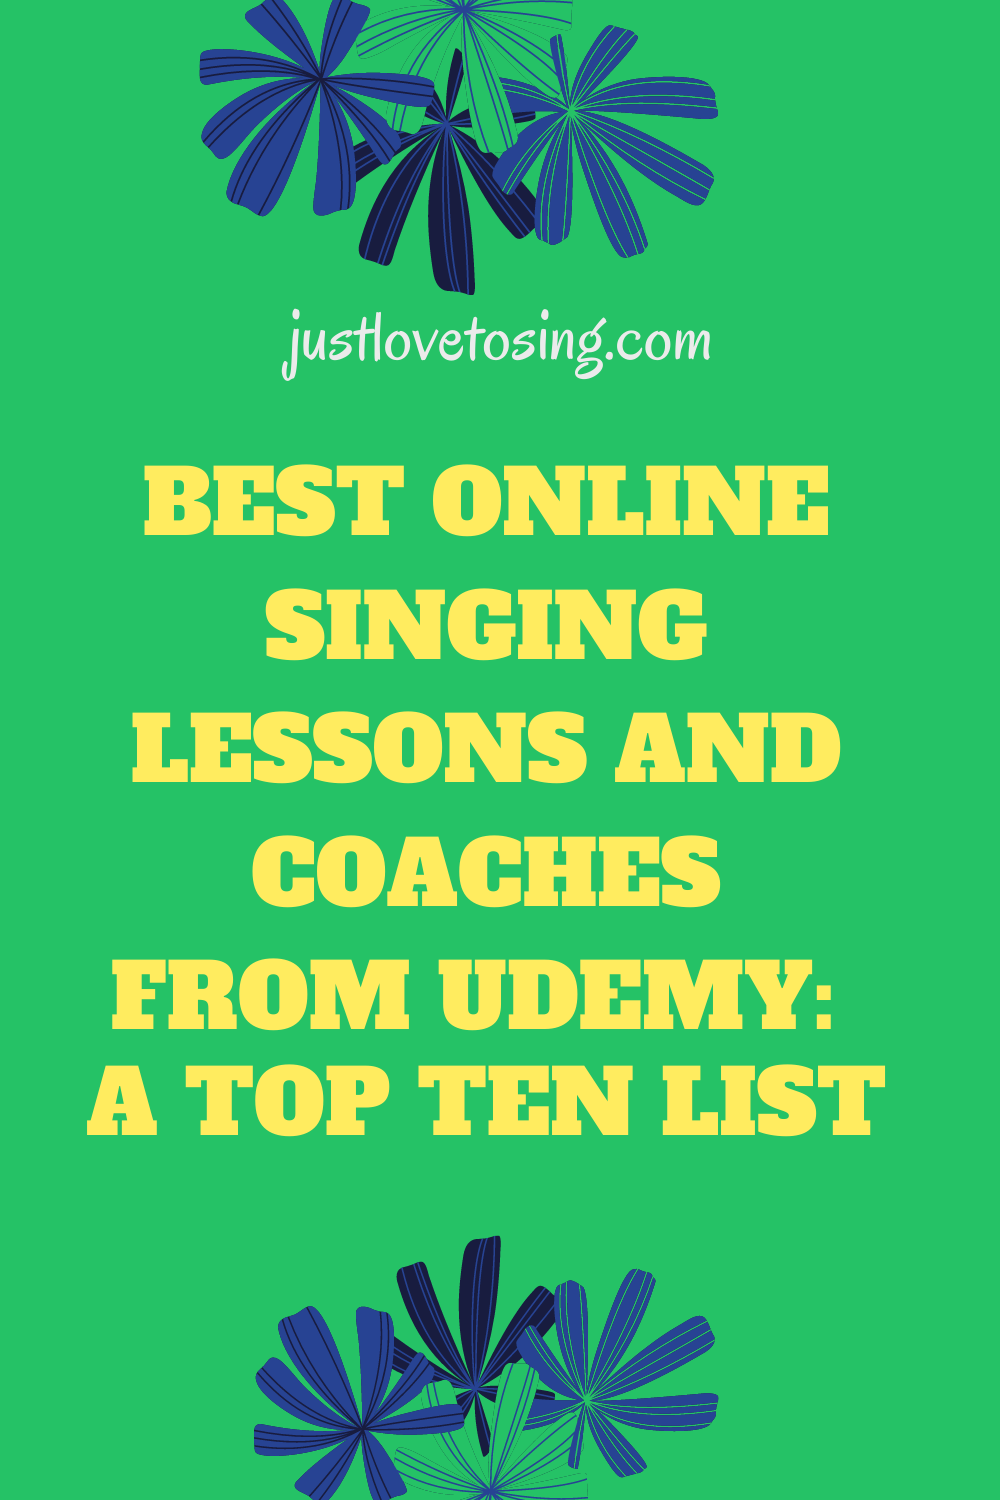 Top 10 online singing lessons and coaches from Udemy